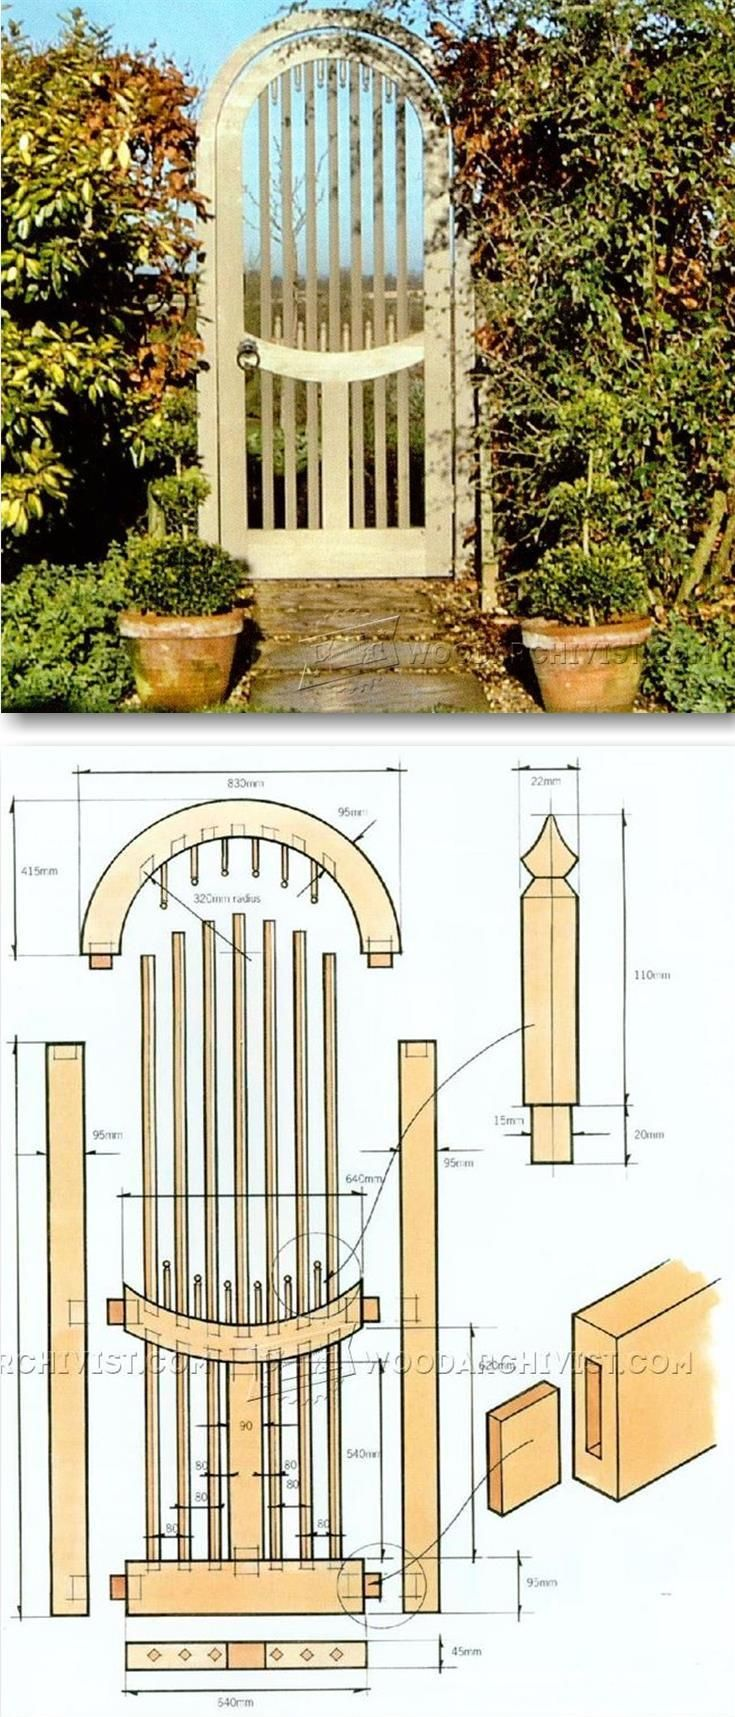 Wooden Garden Gates Plans - Outdoor Plans and Projects | WoodArchivist.com